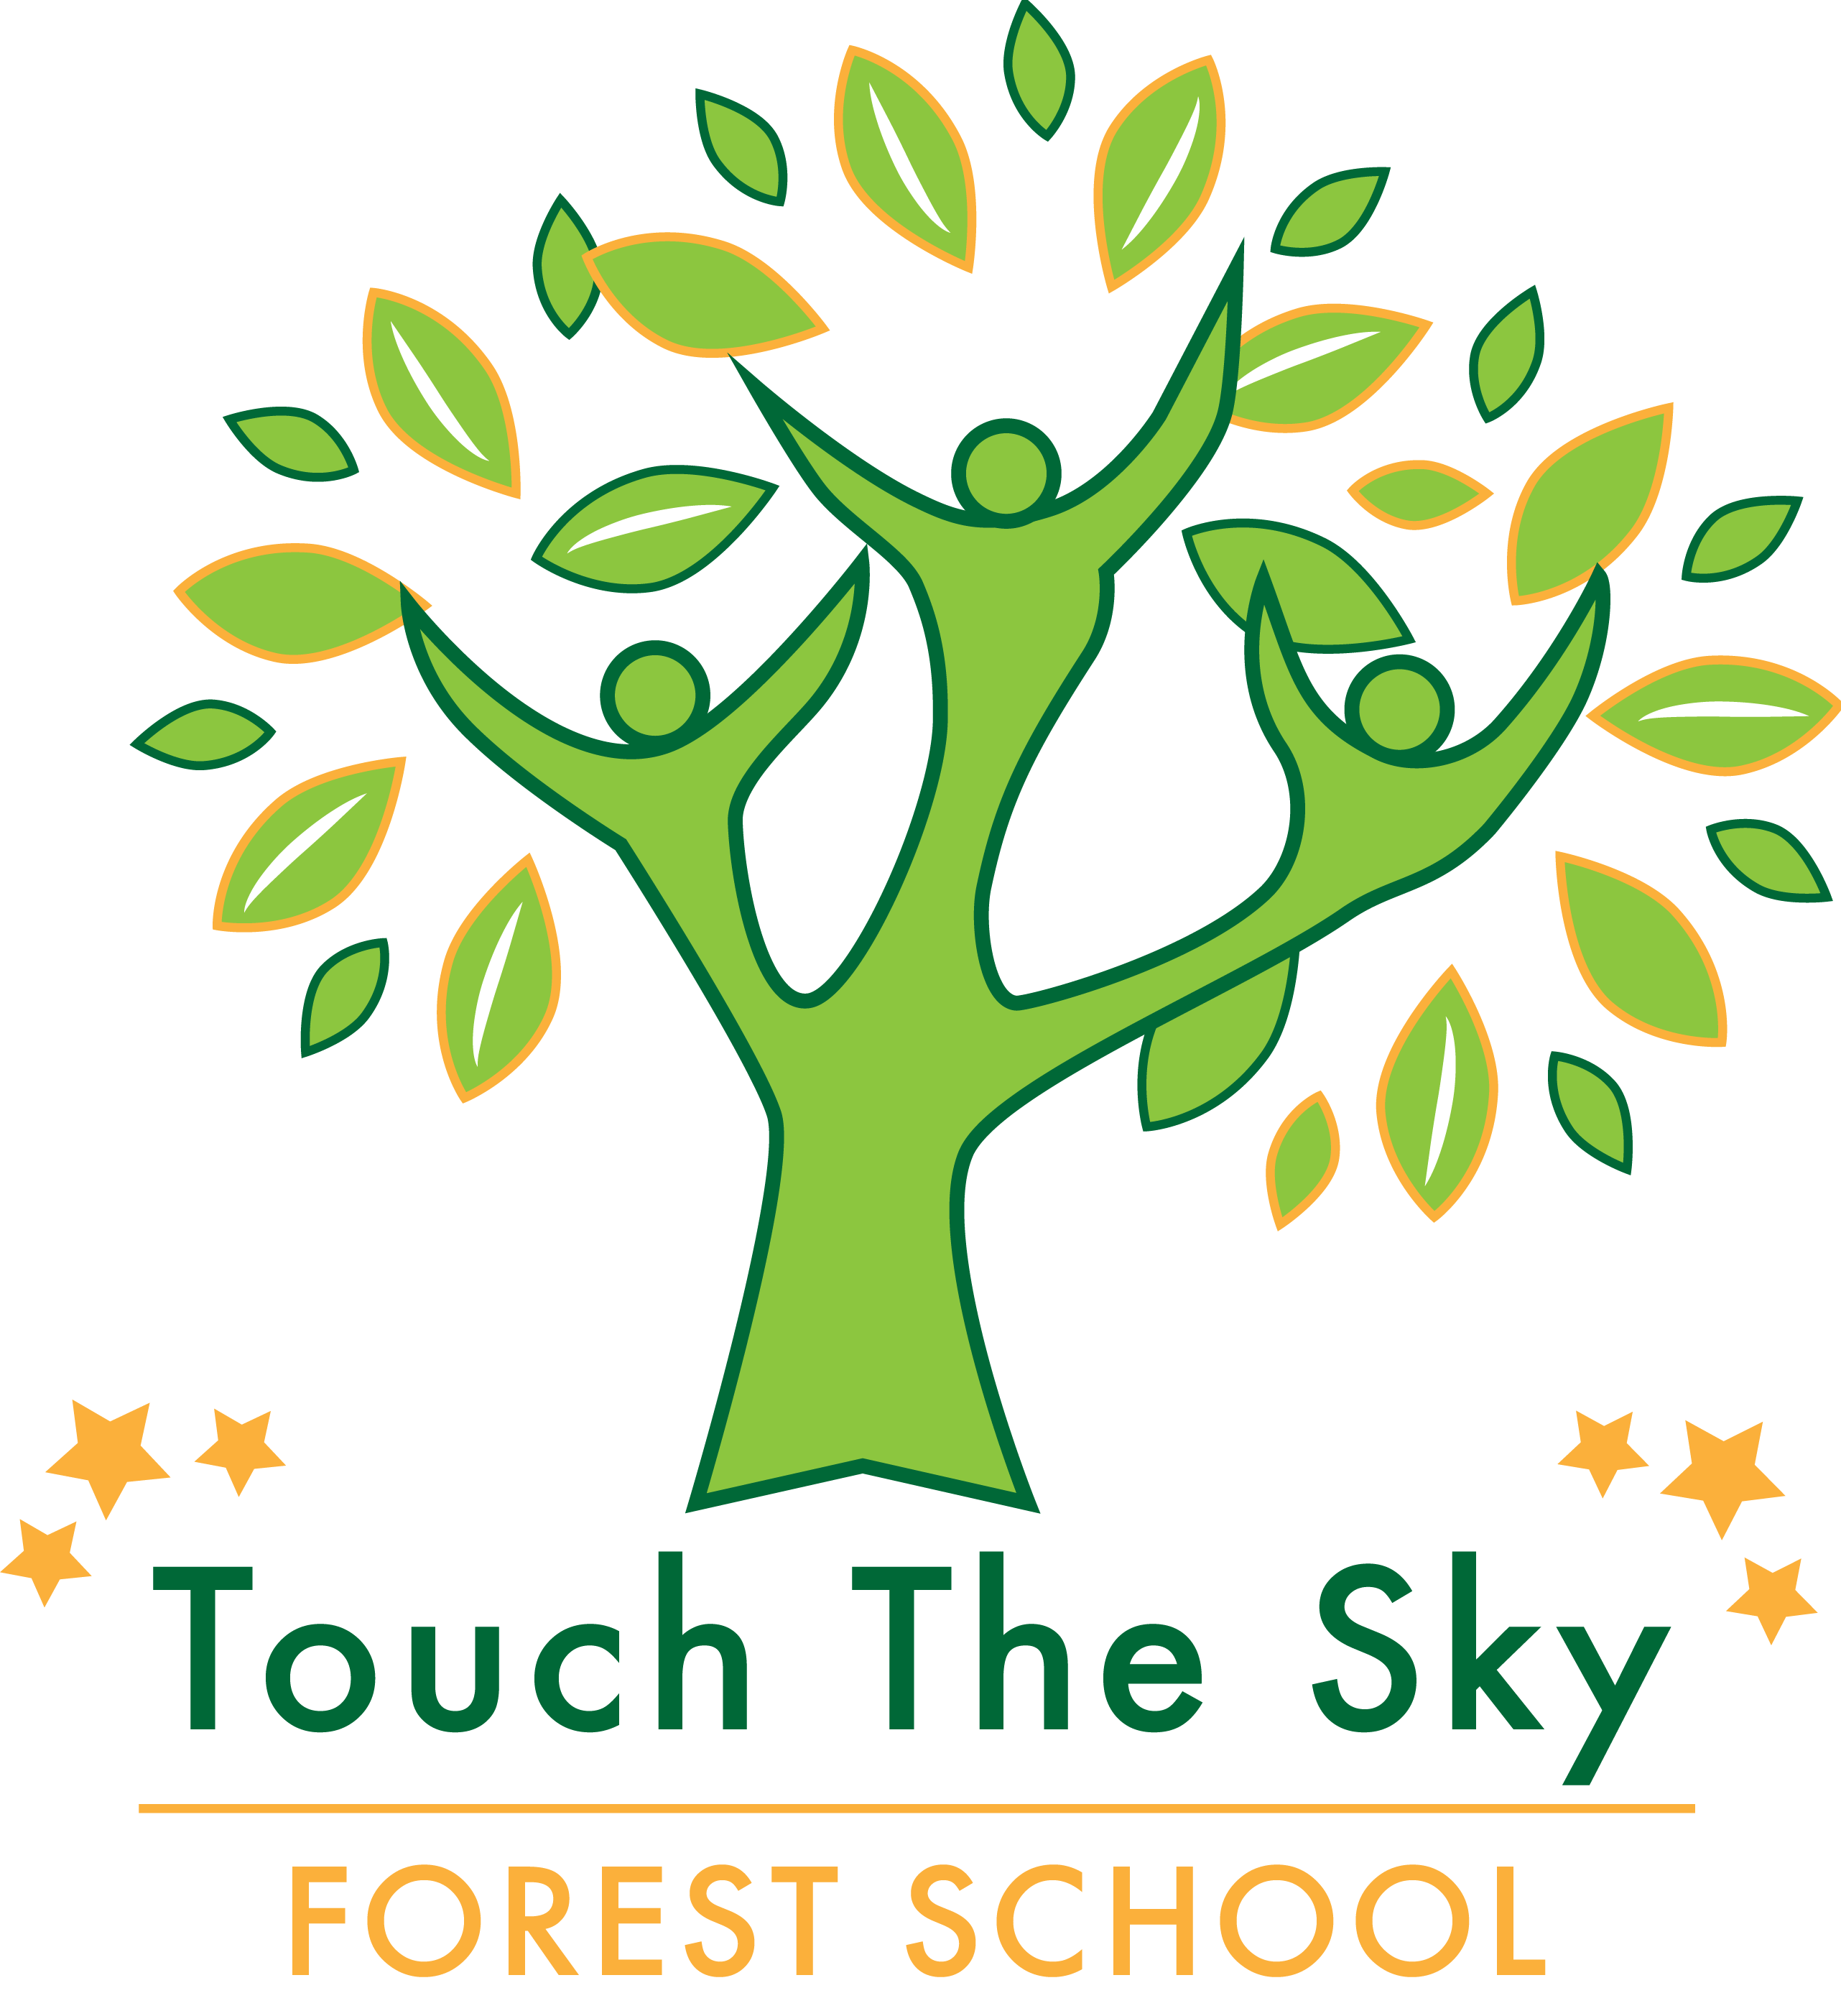 About touch the sky. Clipart forest outdoor education